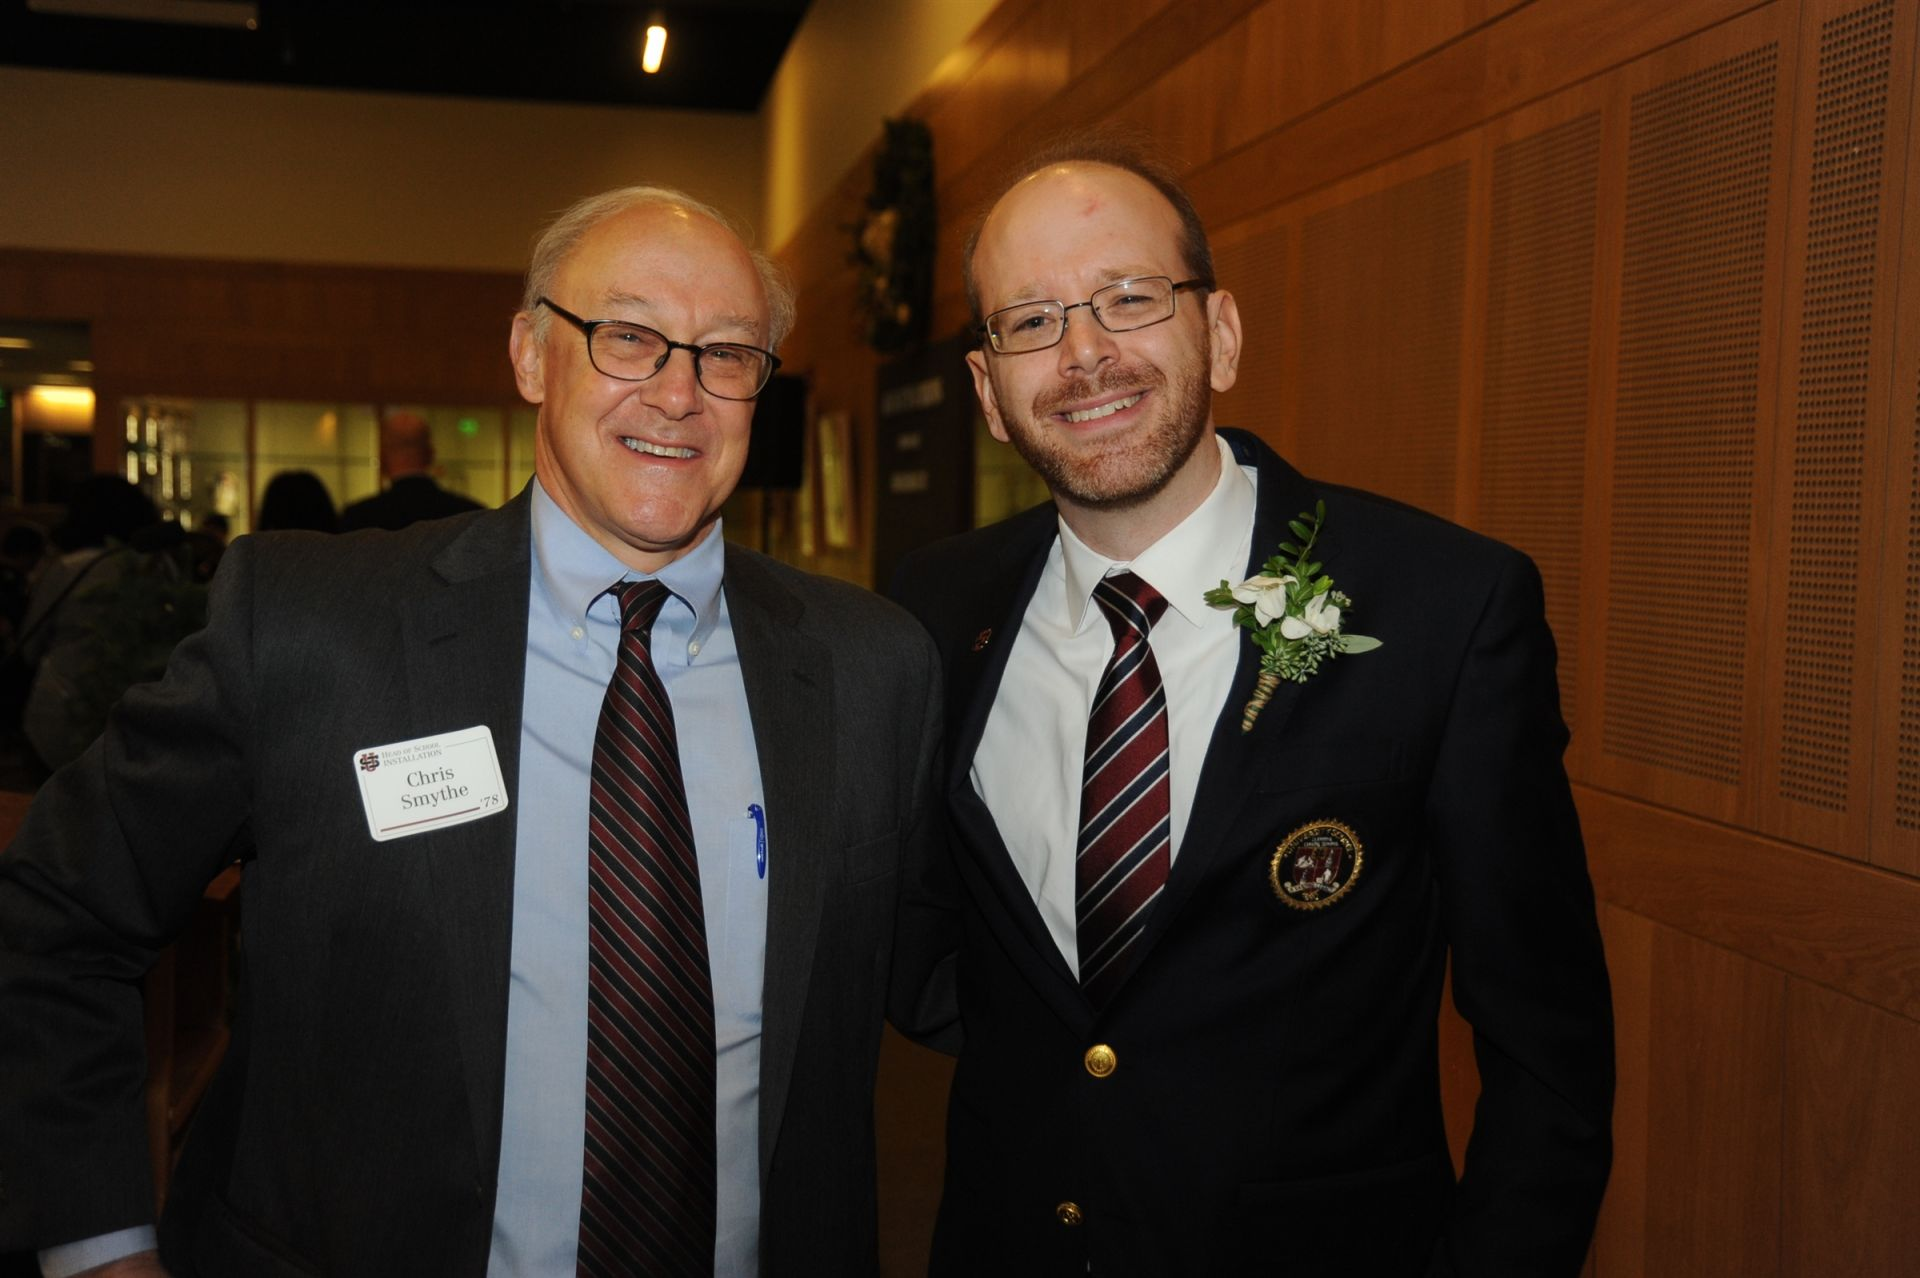 Board Chair Chris Smythe '78 with Head of School Patrick Gallagher